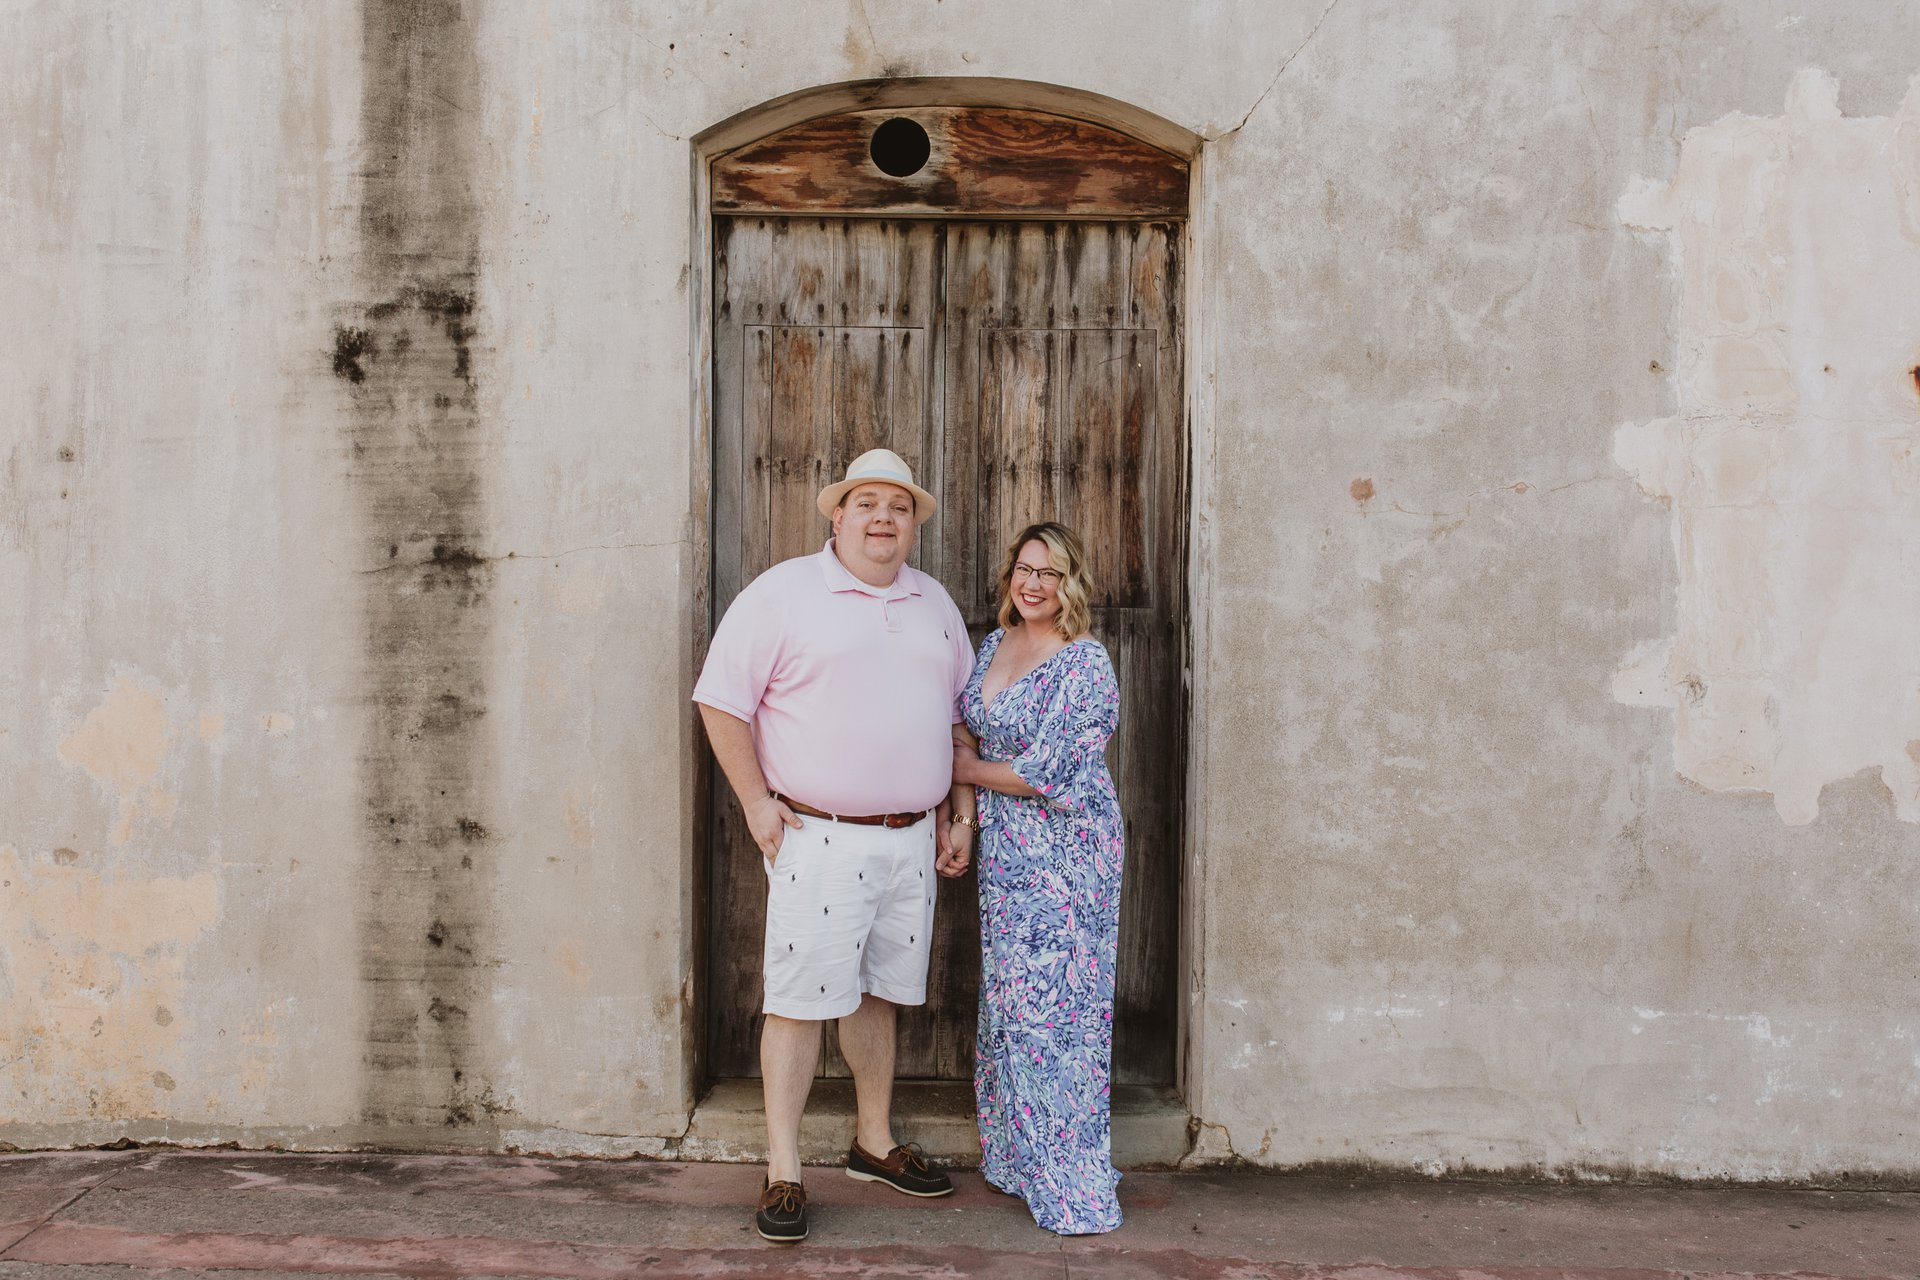 Flytographer Travel Story - Anniversary portraits in Old San Juan